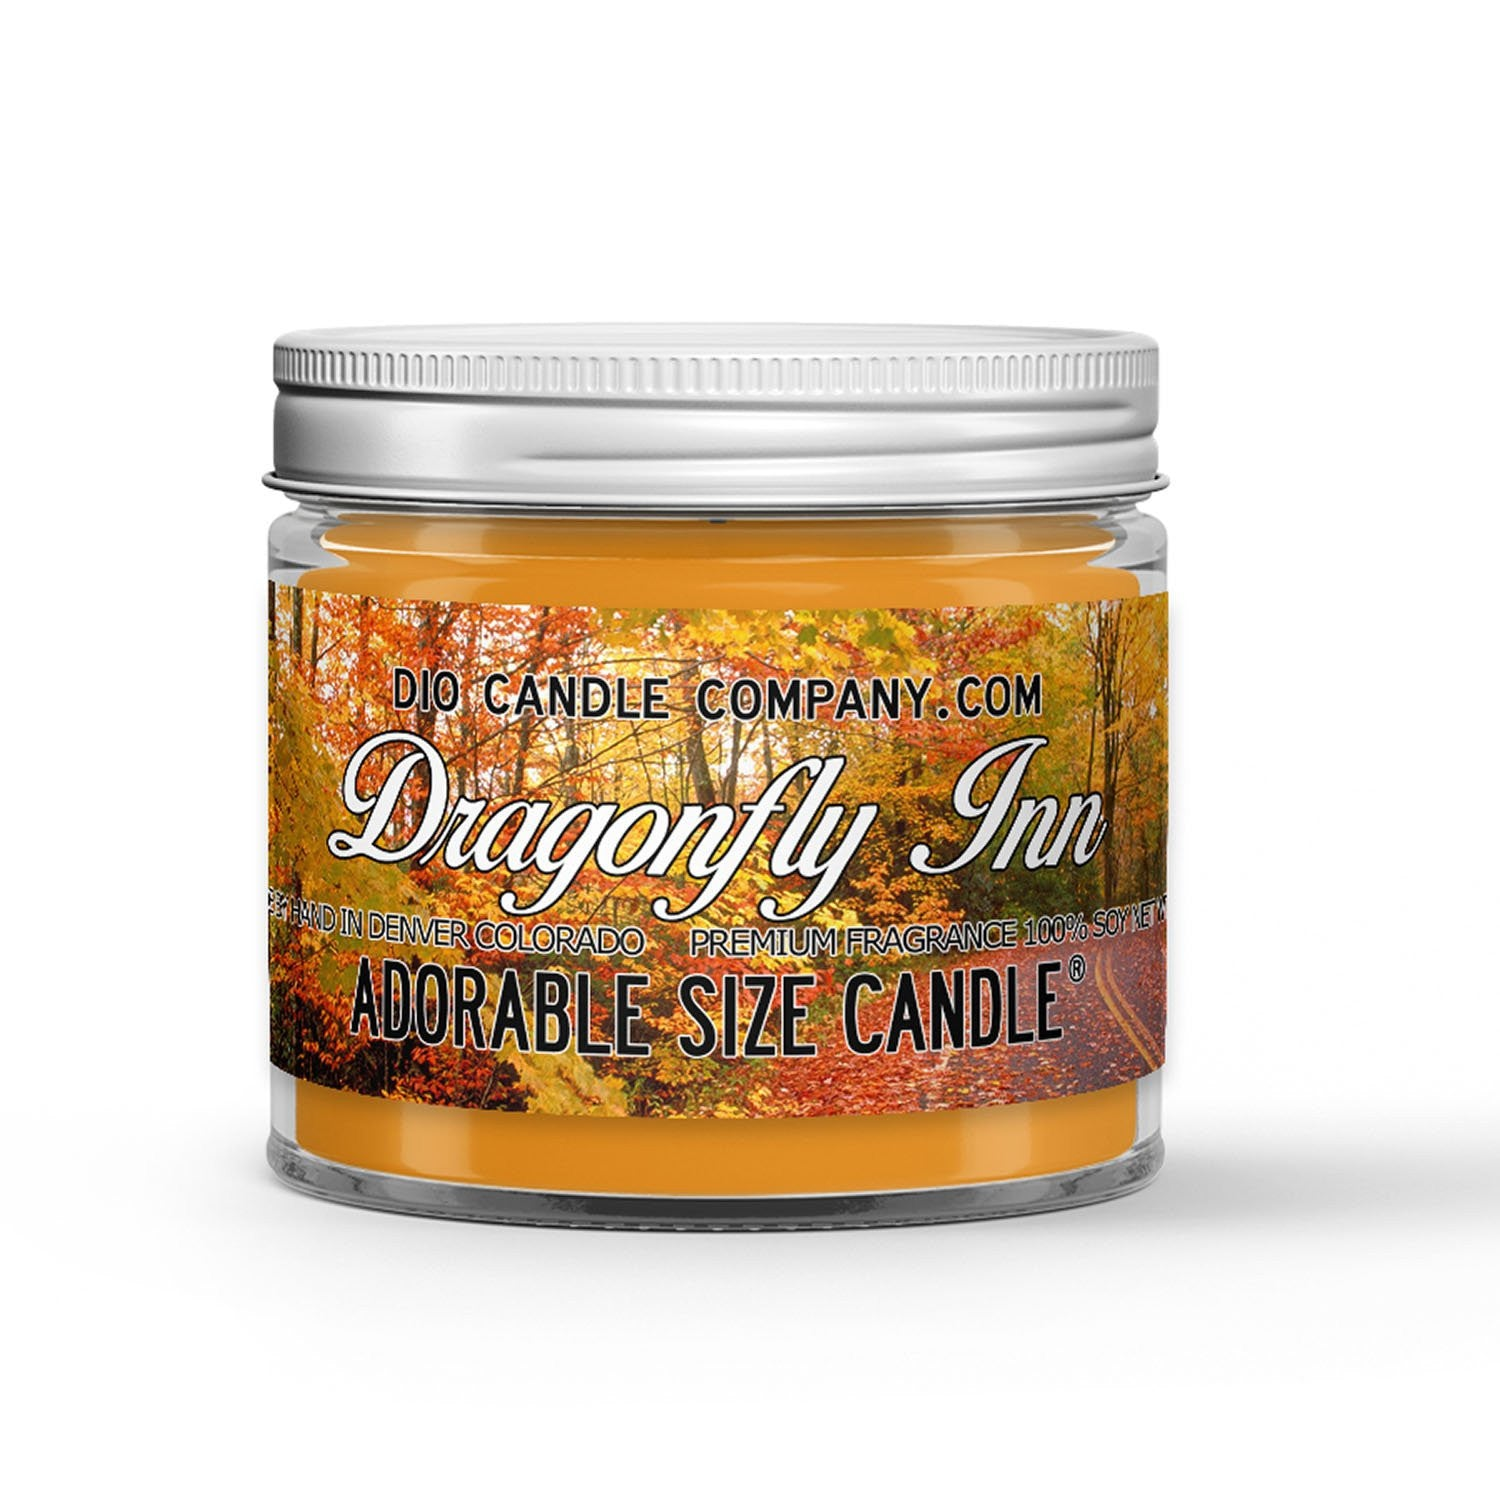 Dragonfly Inn Candle - Apples - Cinnamon - Fresh Baked Pies - 1oz Adorable Size Candle® - Dio Candle Company